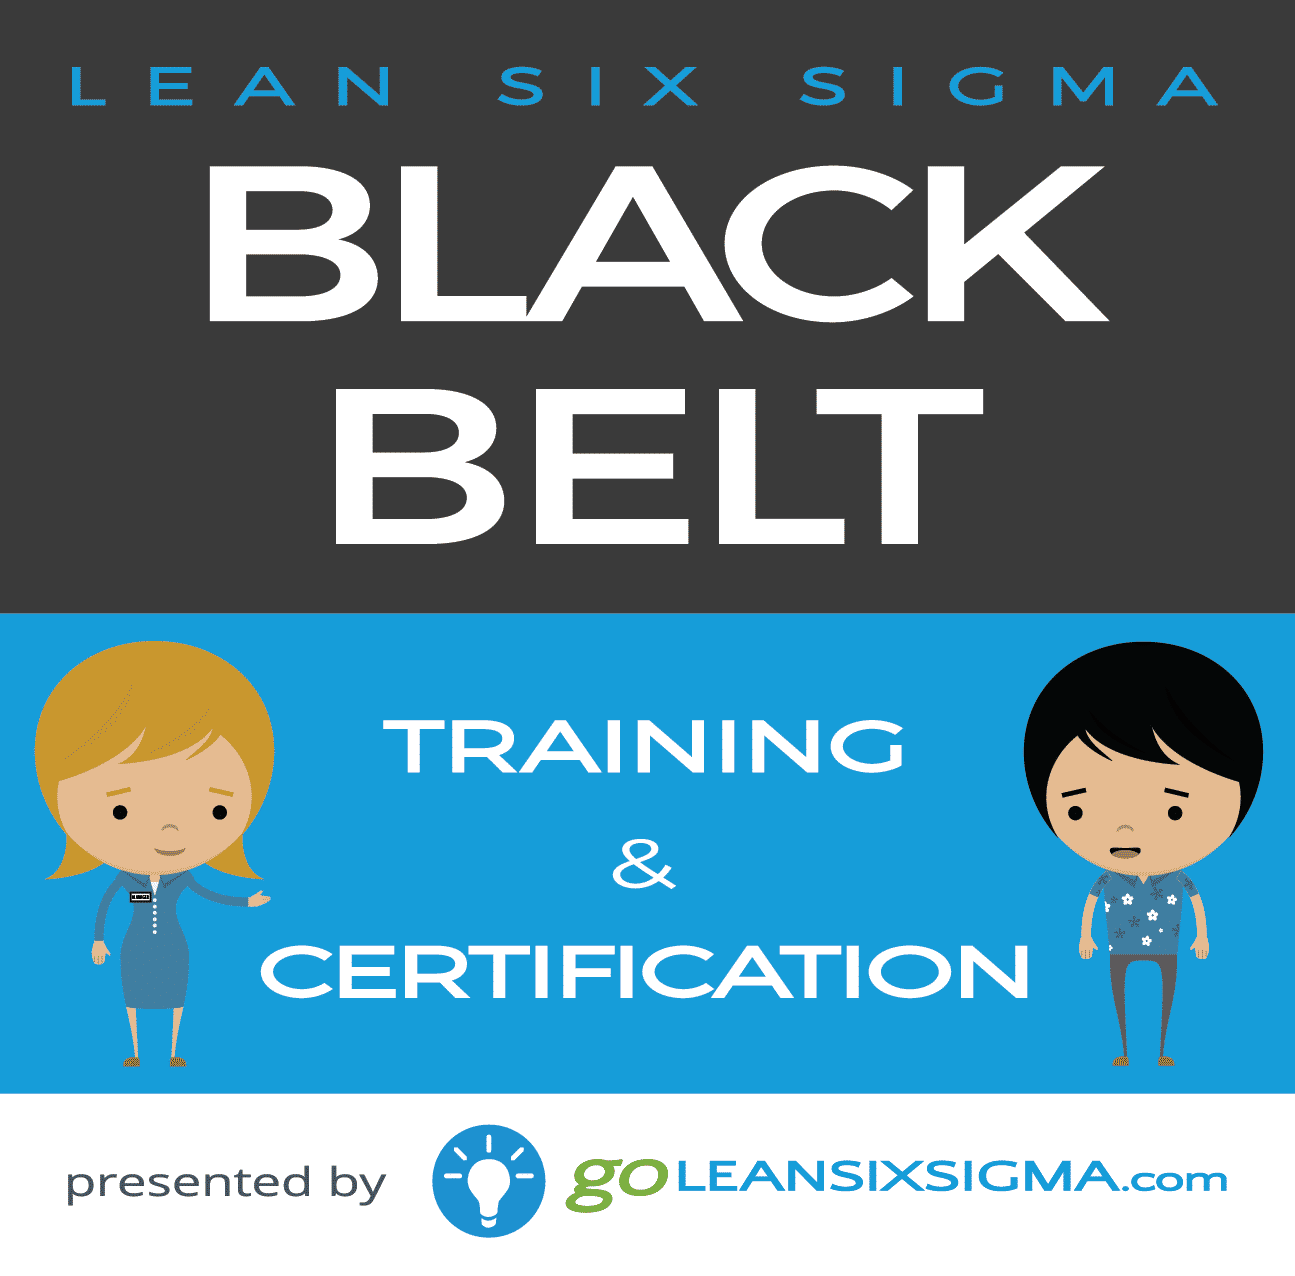 Black Belt Training Certification